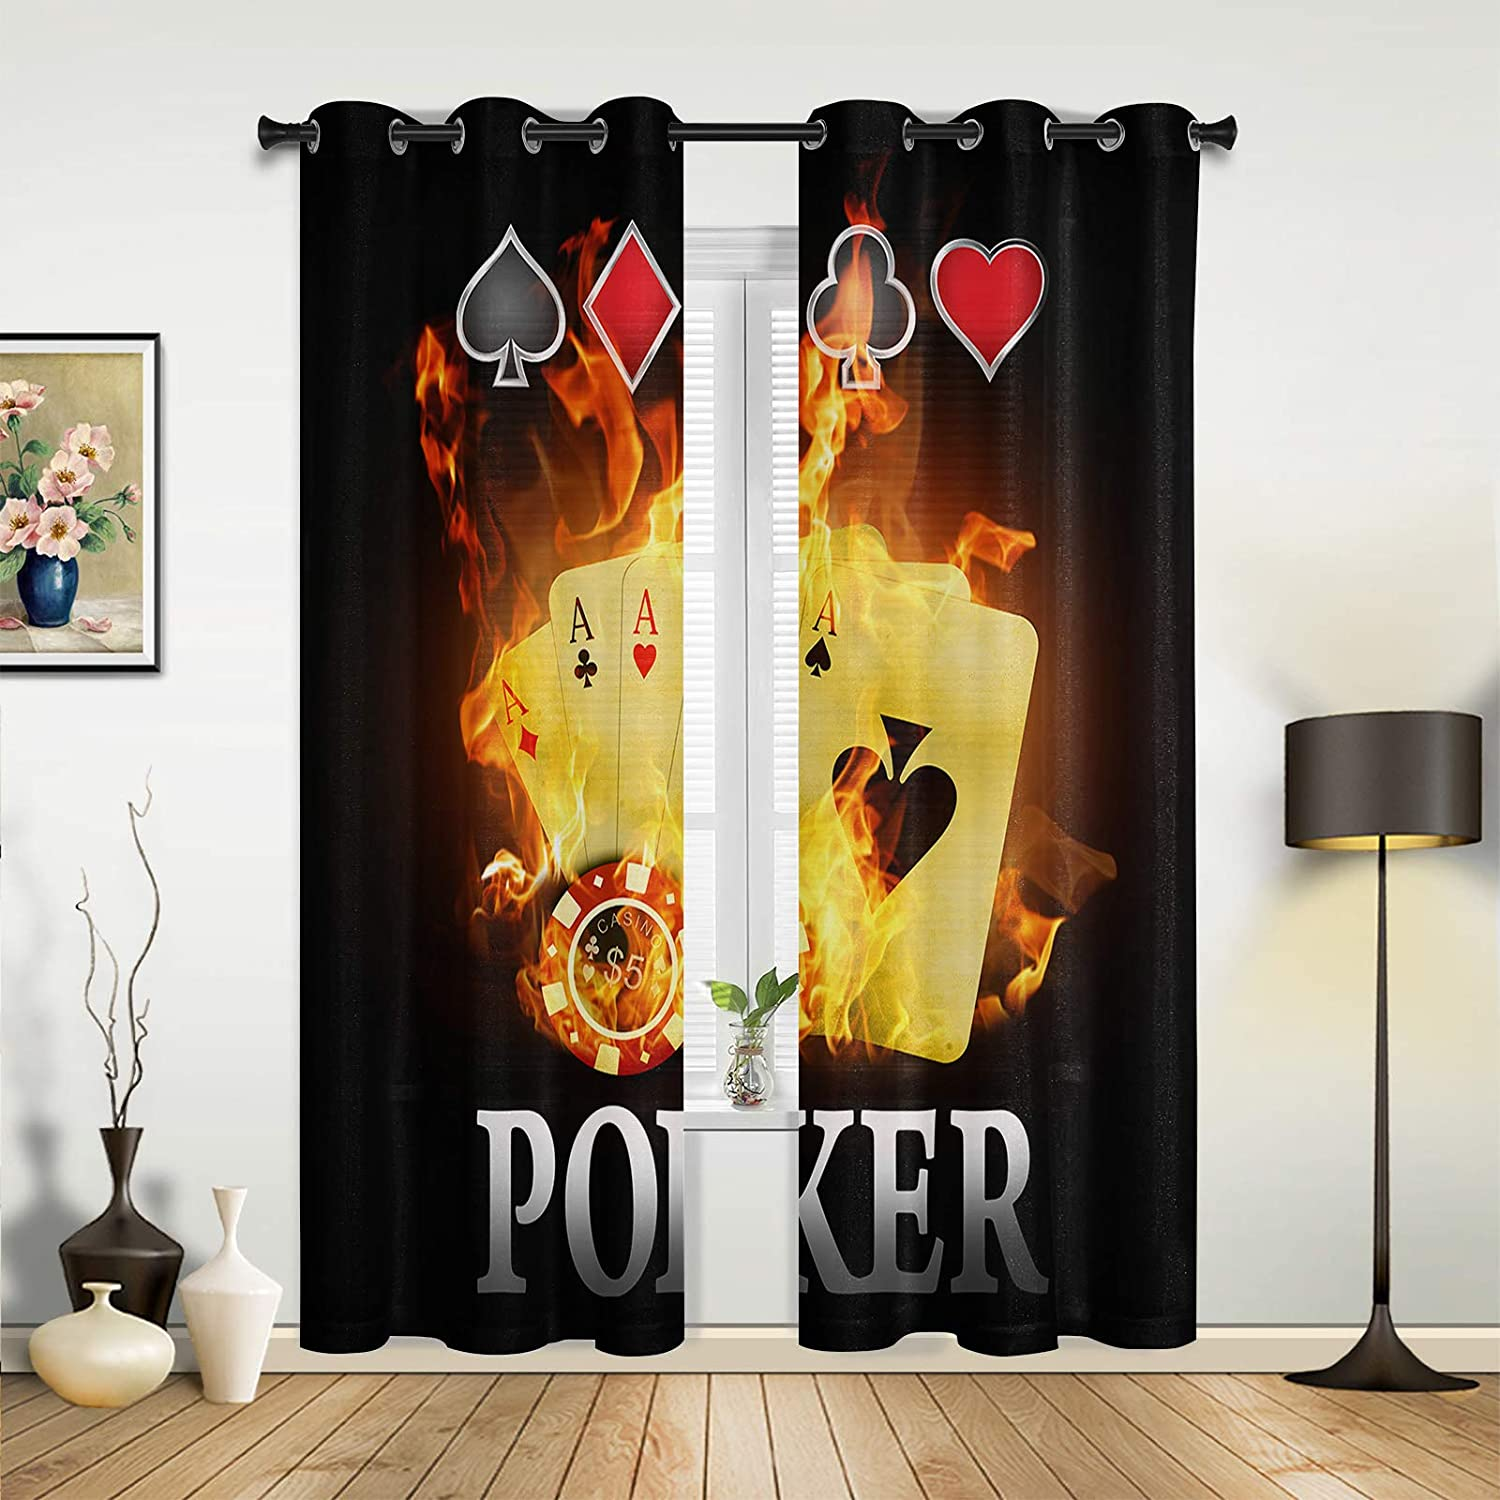 Window Curtains Drapes Panels Cool Nostalgic Old Cla Flame Poker Industry No. Classic 1